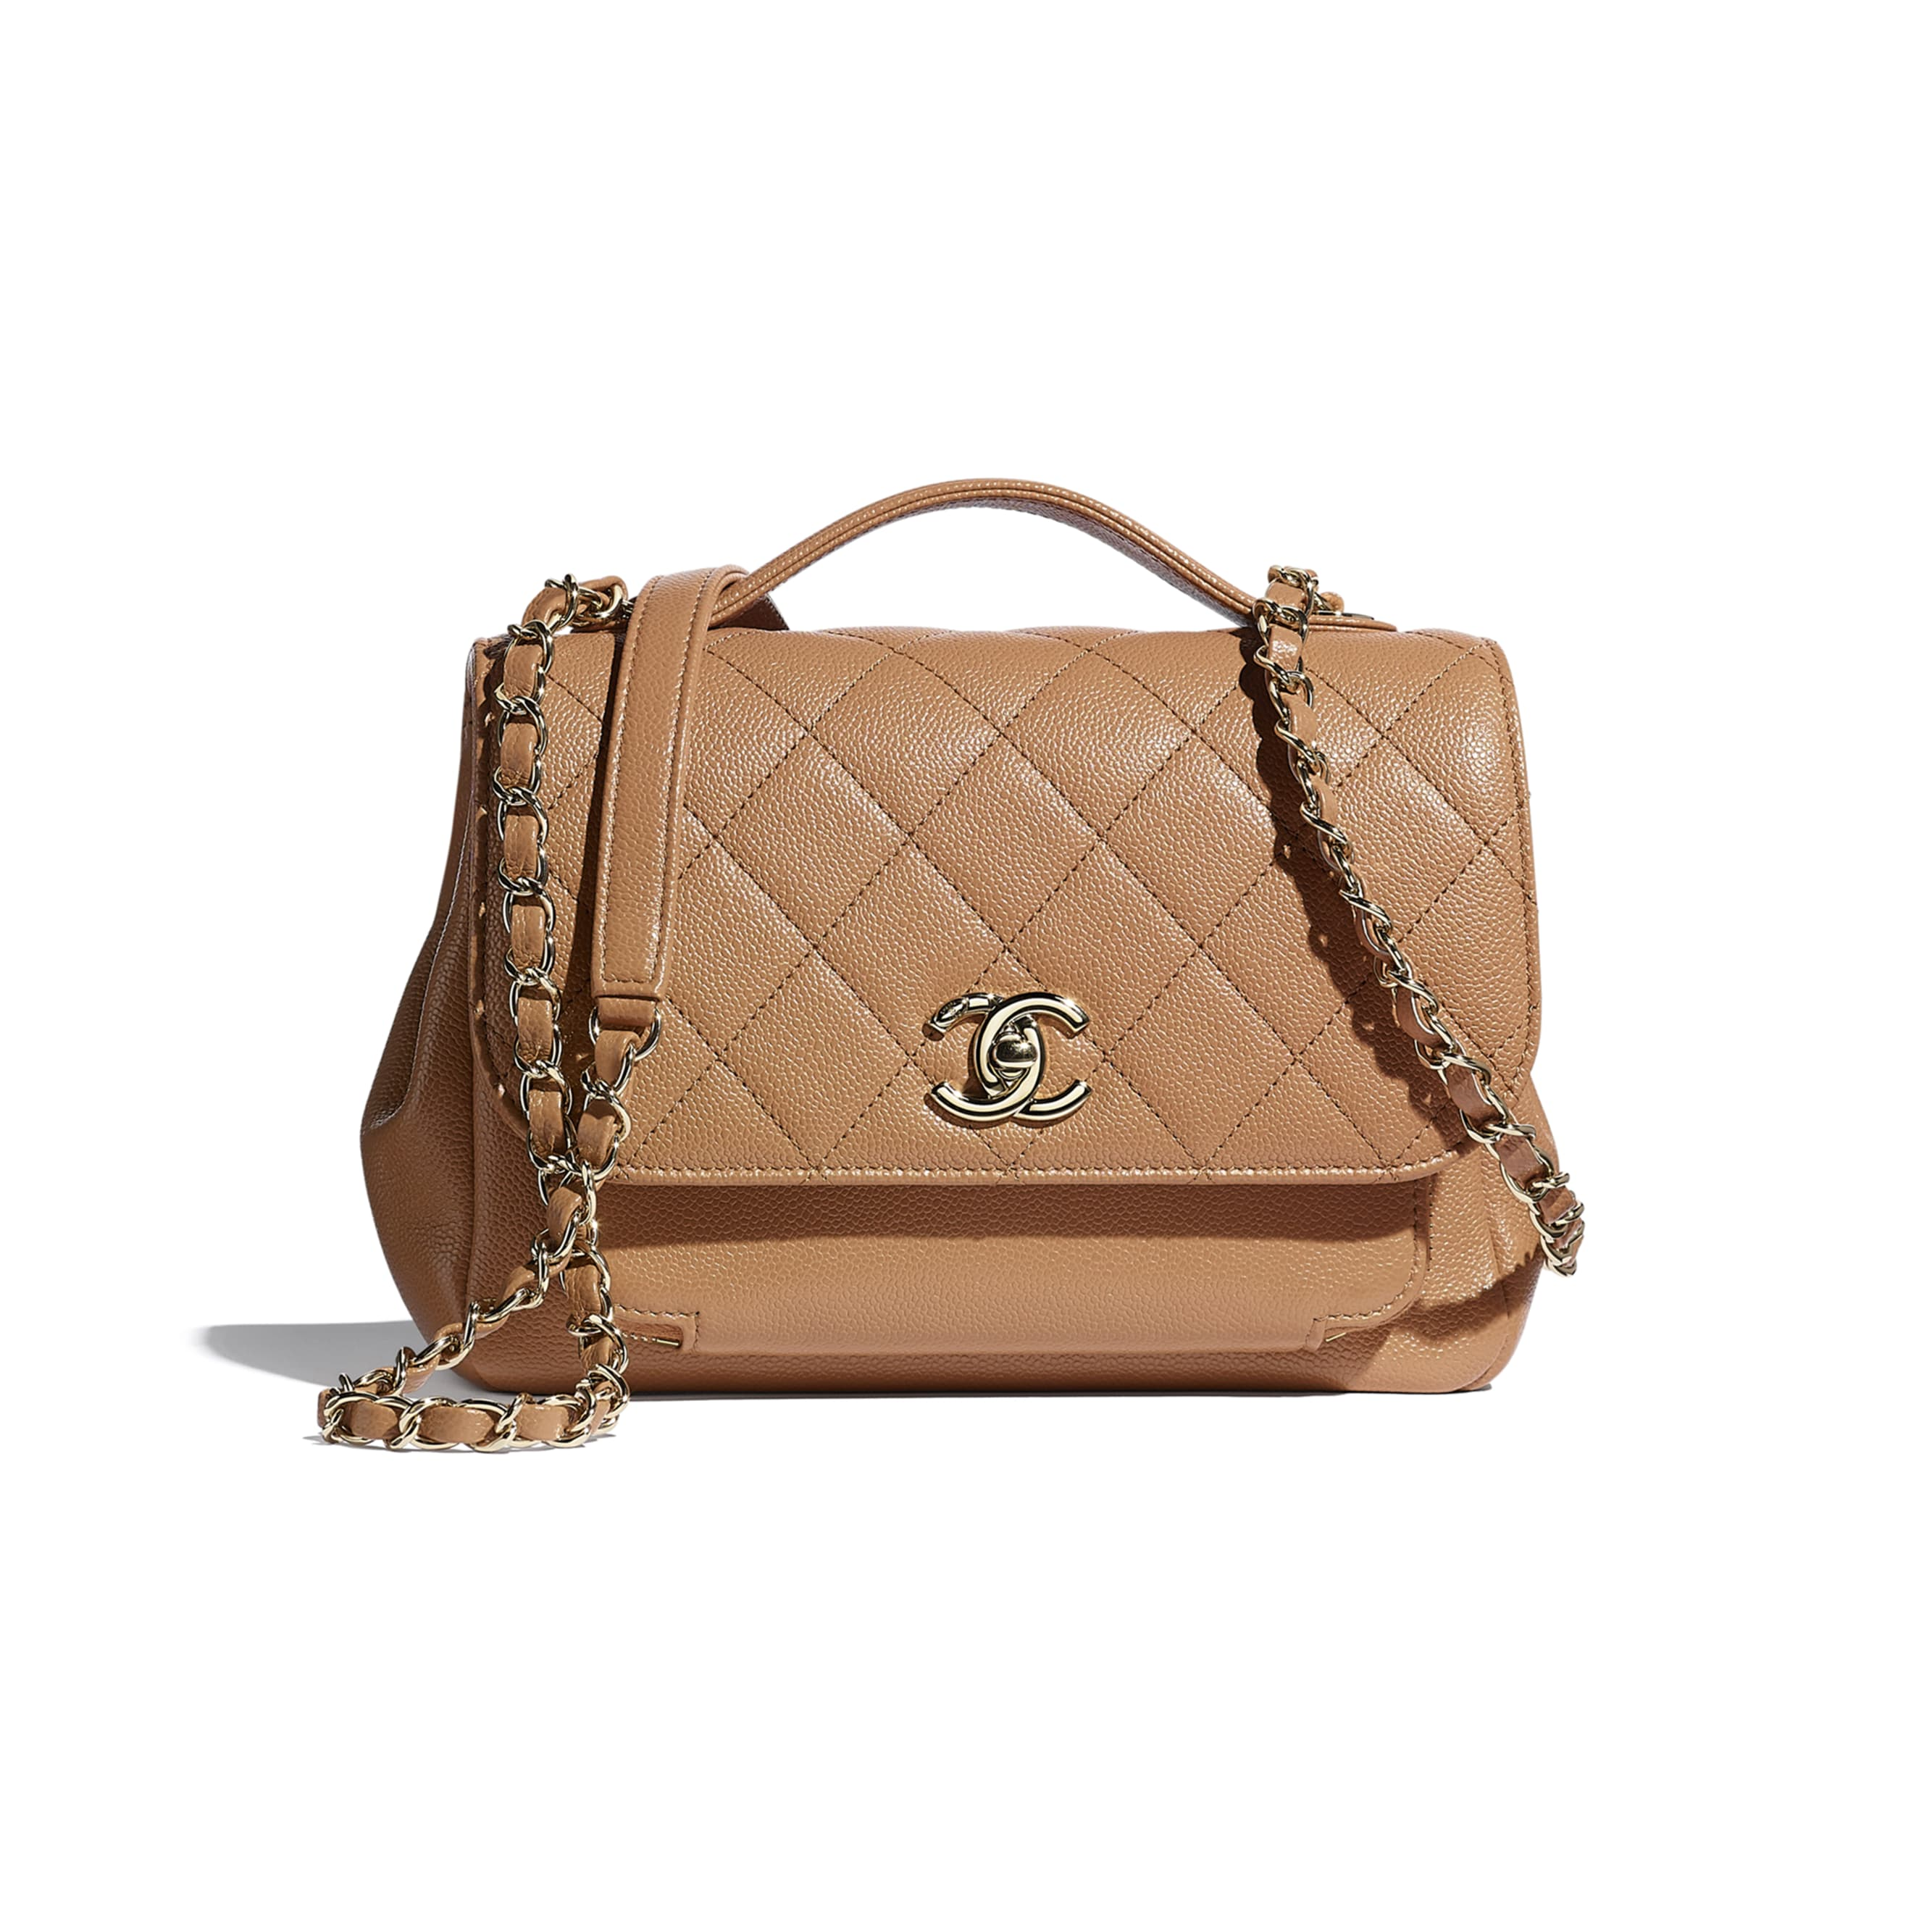 Small Flap Bag With Top Handle - Brown - Grained Calfskin & Gold-Tone Metal - CHANEL - Default view - see standard sized version